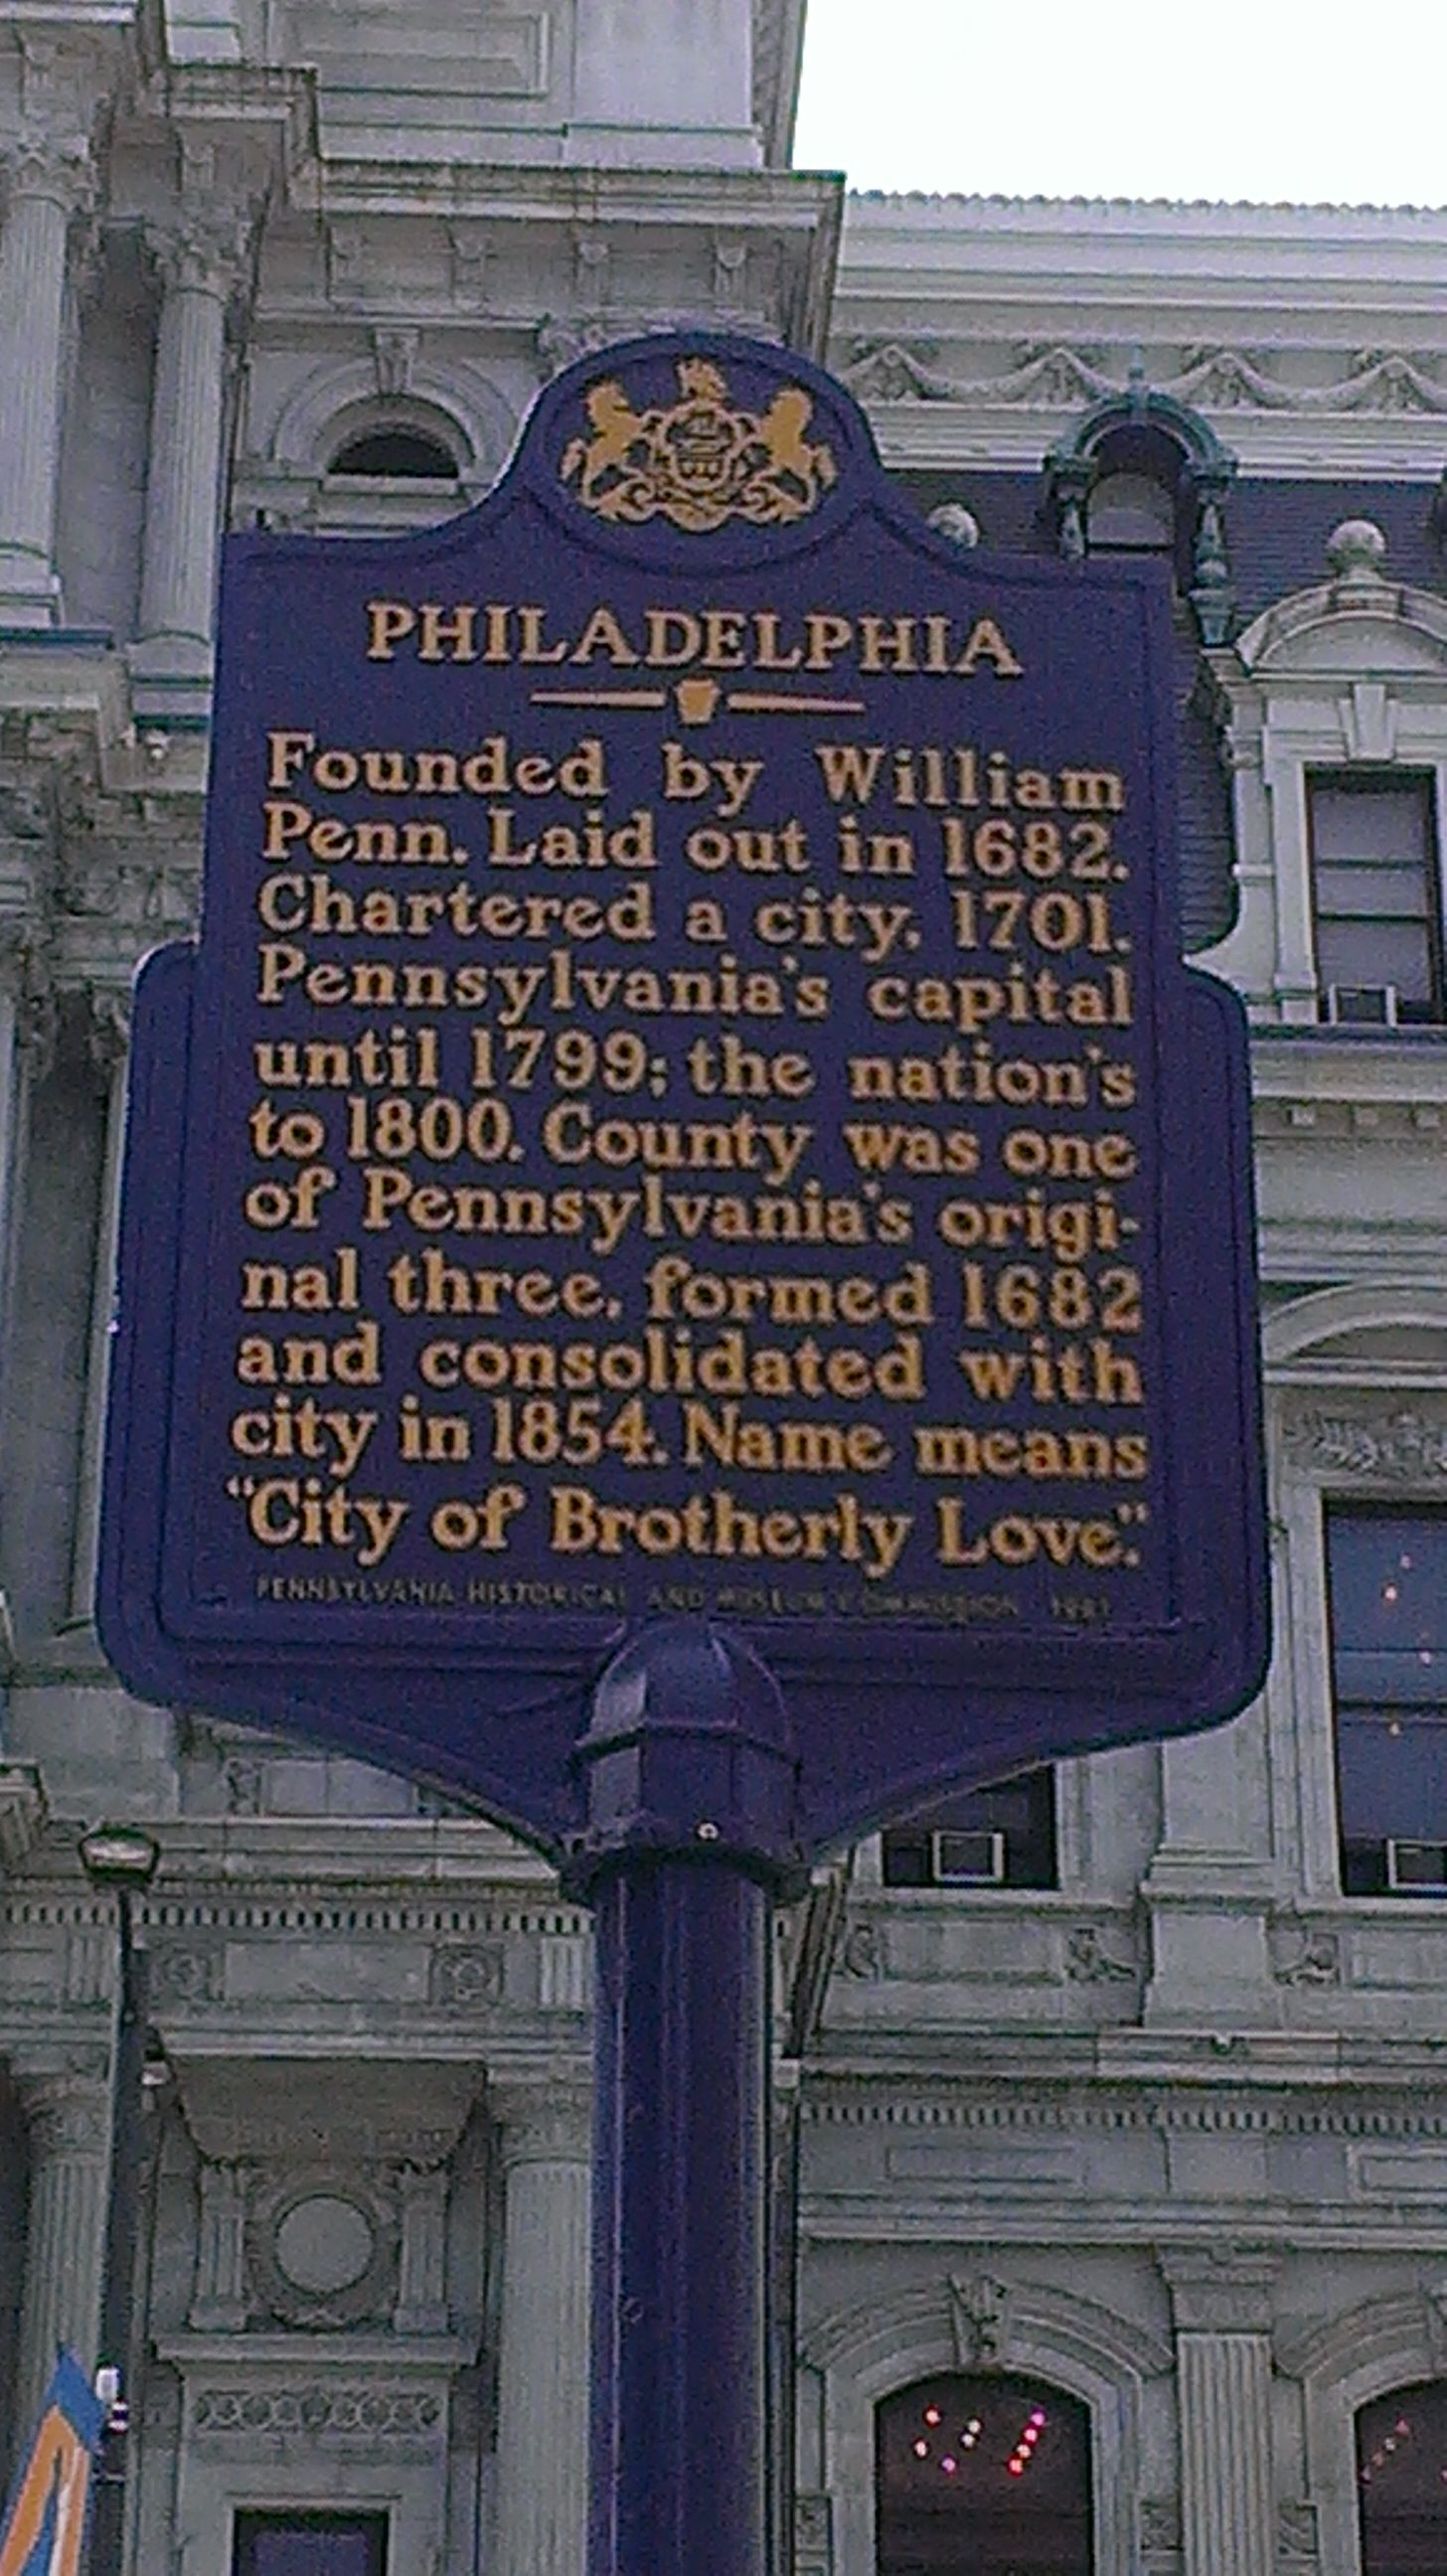 Philadelphia This Marker Is Located On The North Side Of City